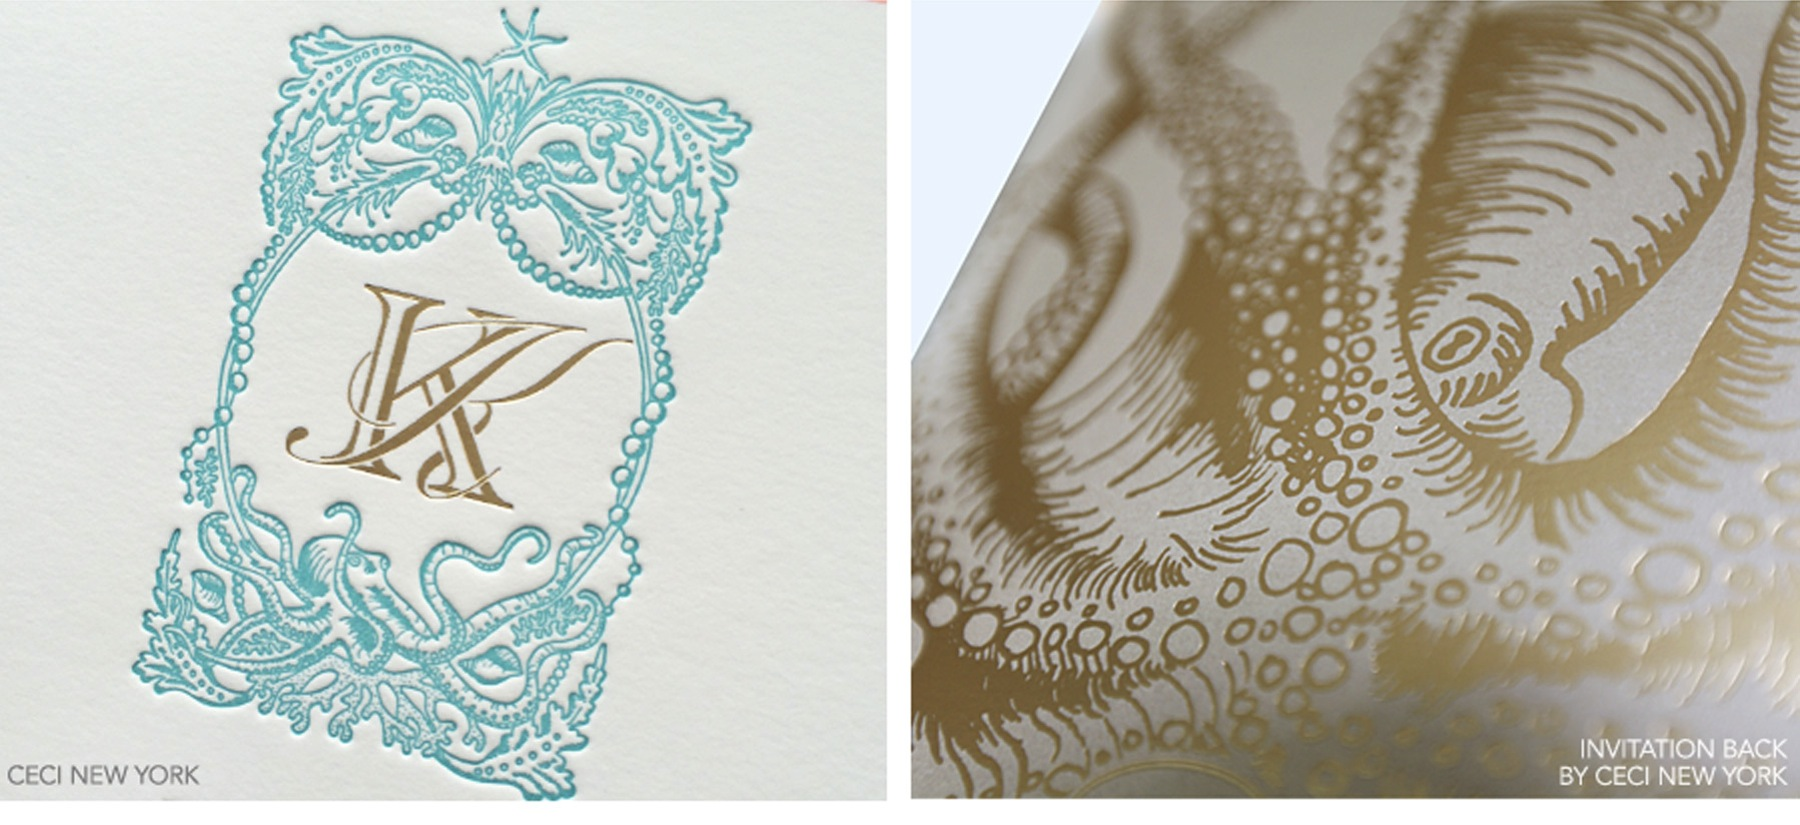 Luxury Wedding Invitations by Ceci New York - Our Muse - Tropical Hawaiian Wedding - Be inspired by Kelly & Kaniela's tropical, vintage Hawaiian wedding - letterpress, printed, foil stamp, beveled edge, tinted edge, crest, octopus, invitation, luxury, wedding, hawaii, sea, shimmer